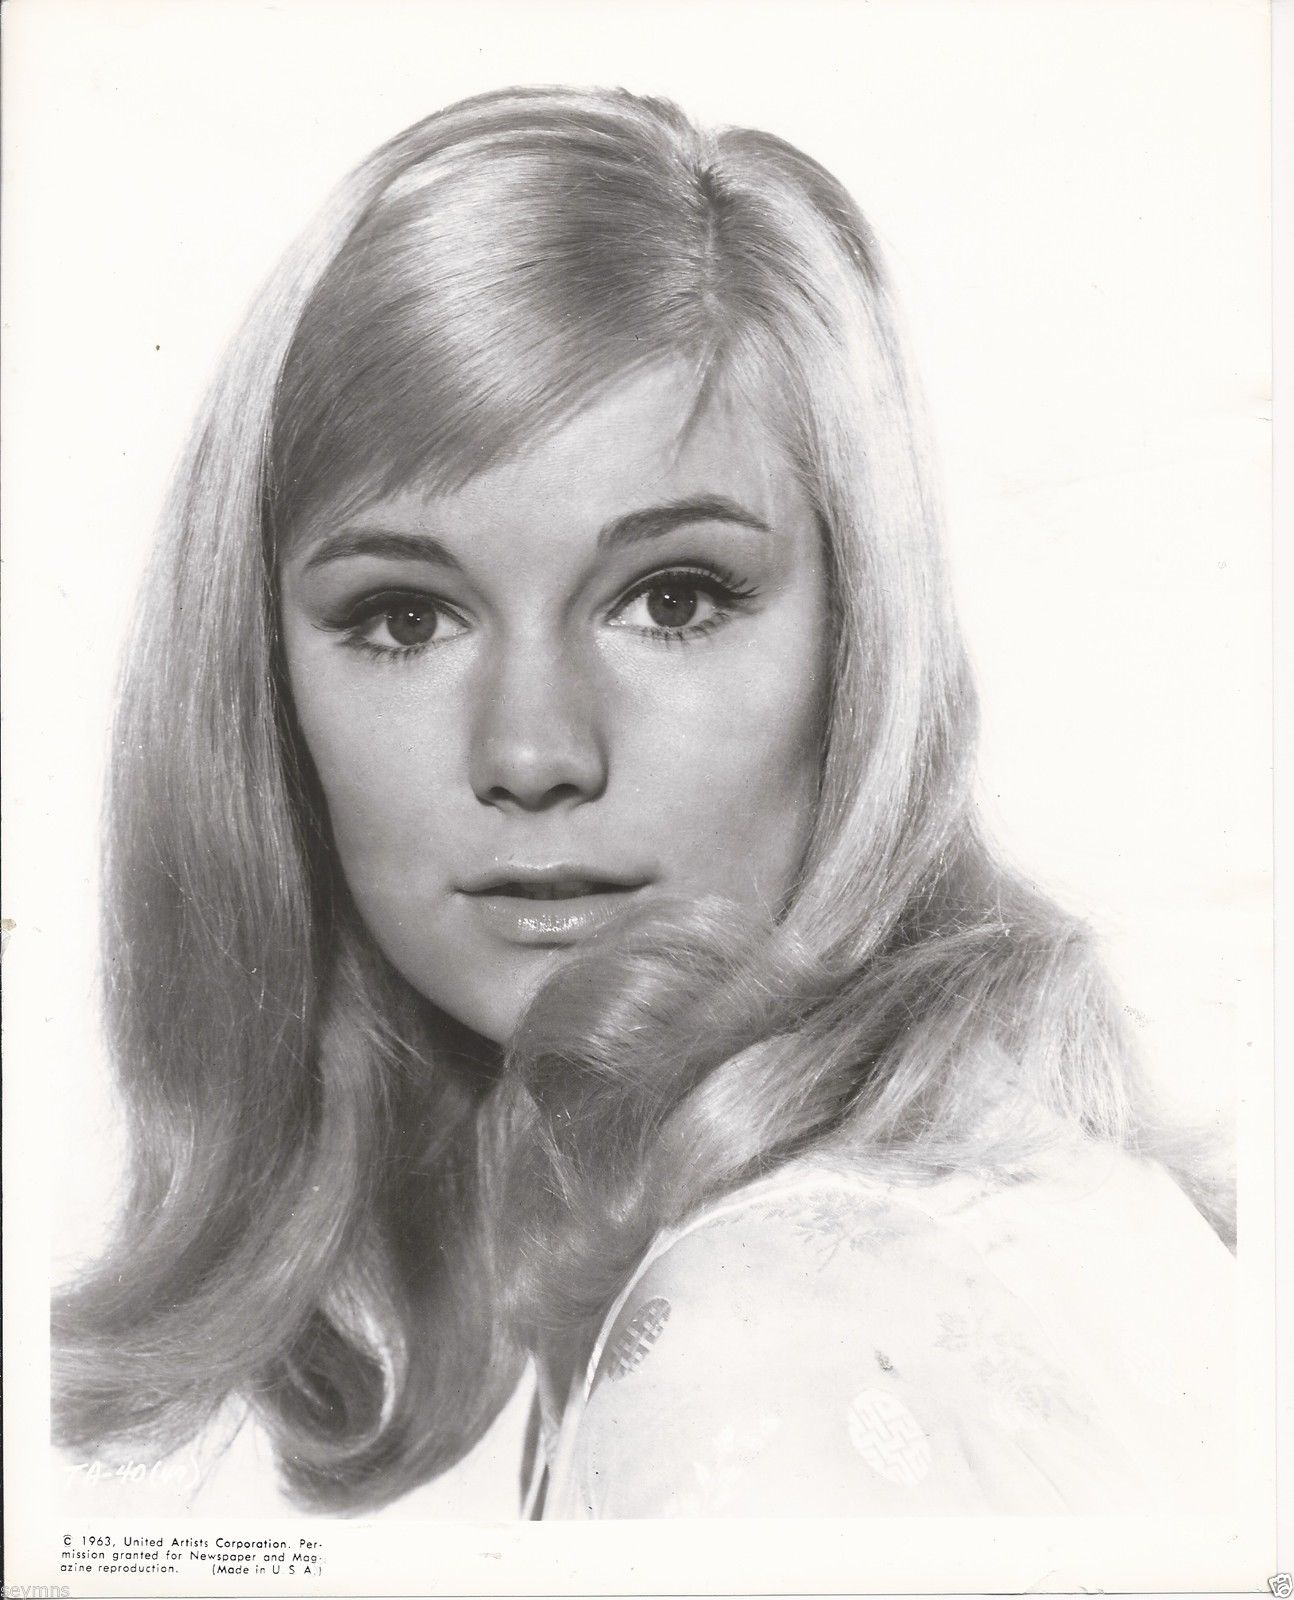 Yvette mimieux born 1942 in a photo for united artists for Milsuite